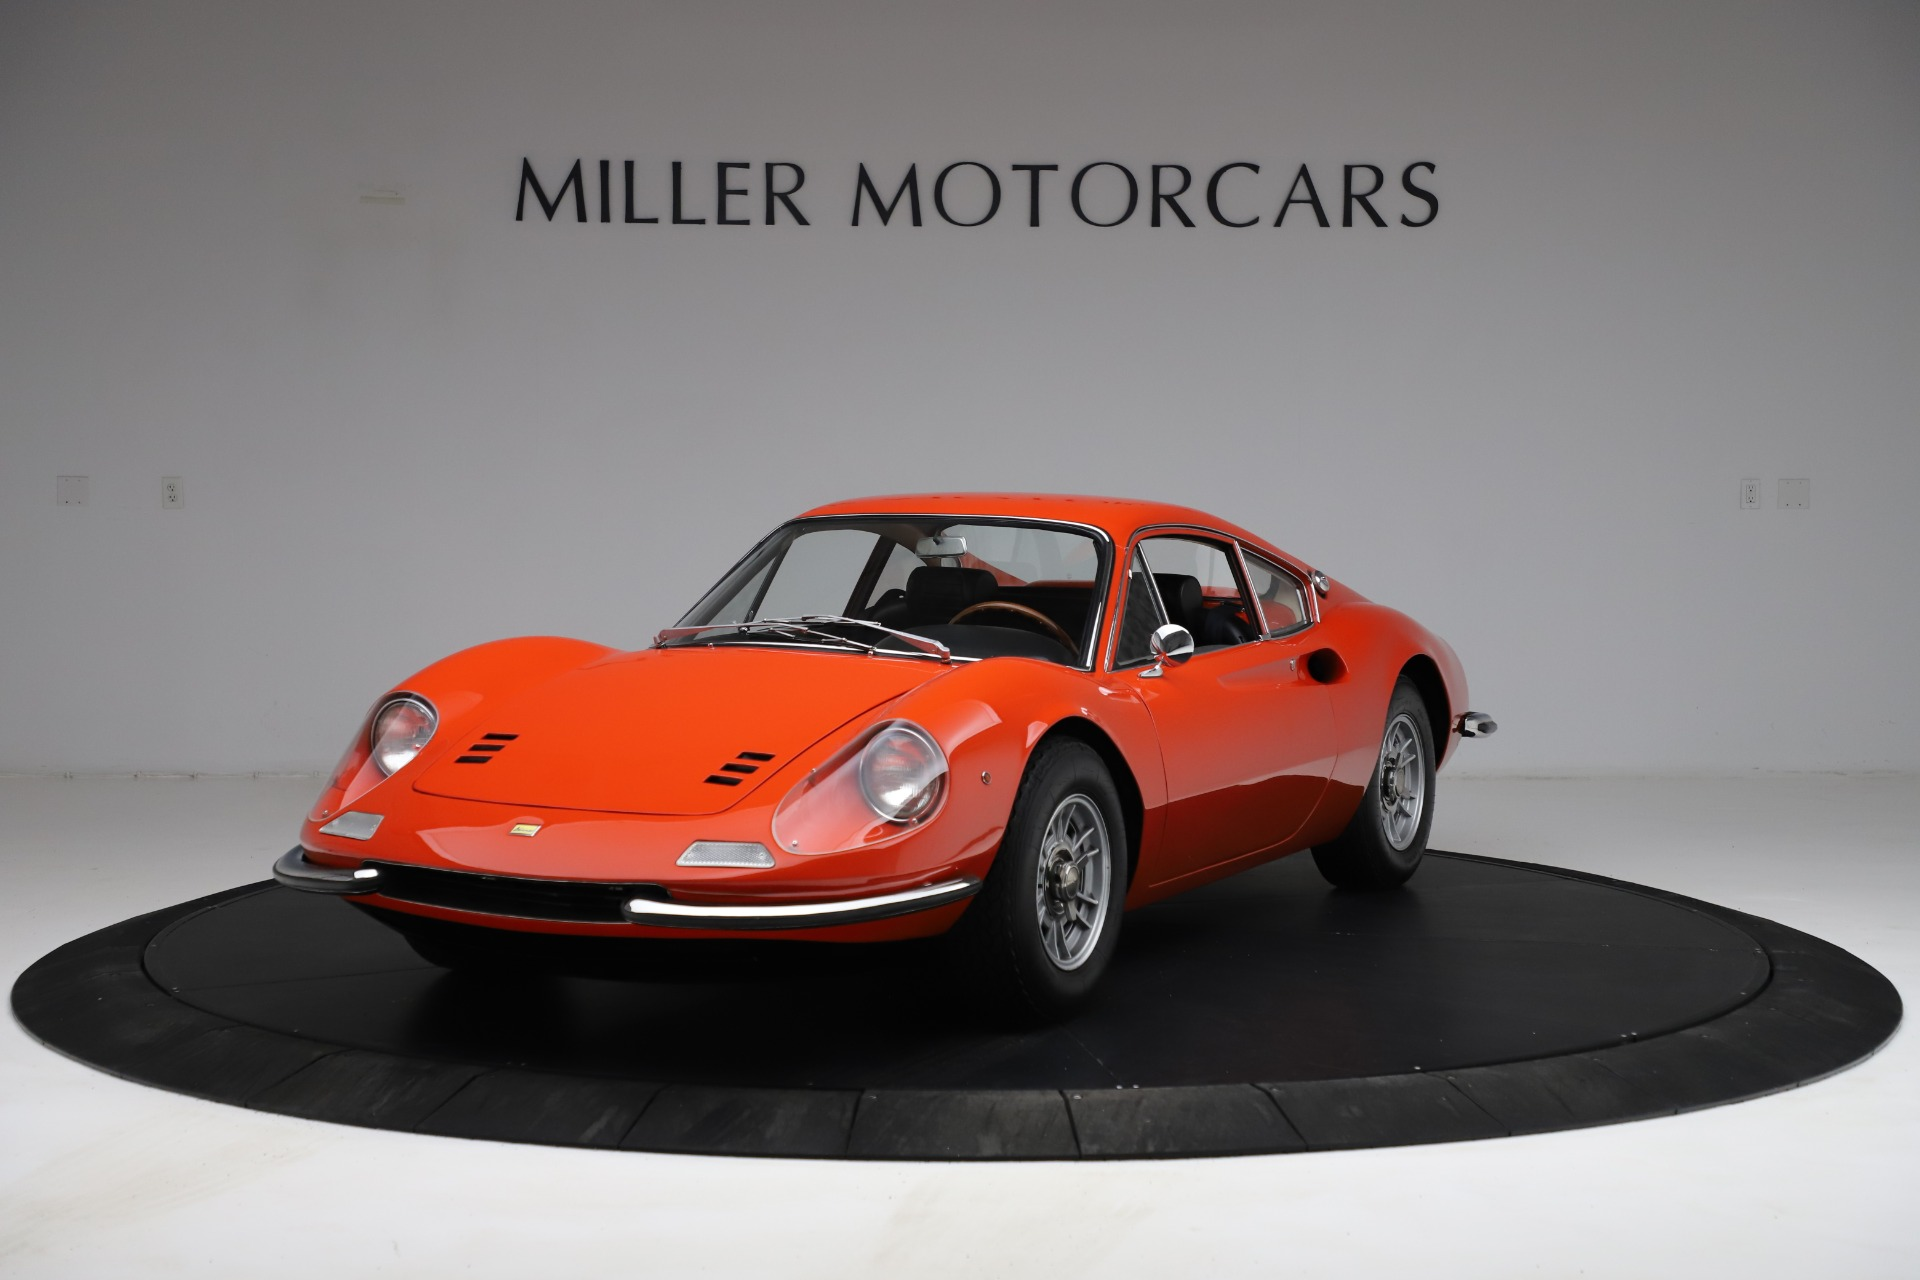 Used 1968 Ferrari 206 for sale $635,000 at Bentley Greenwich in Greenwich CT 06830 1